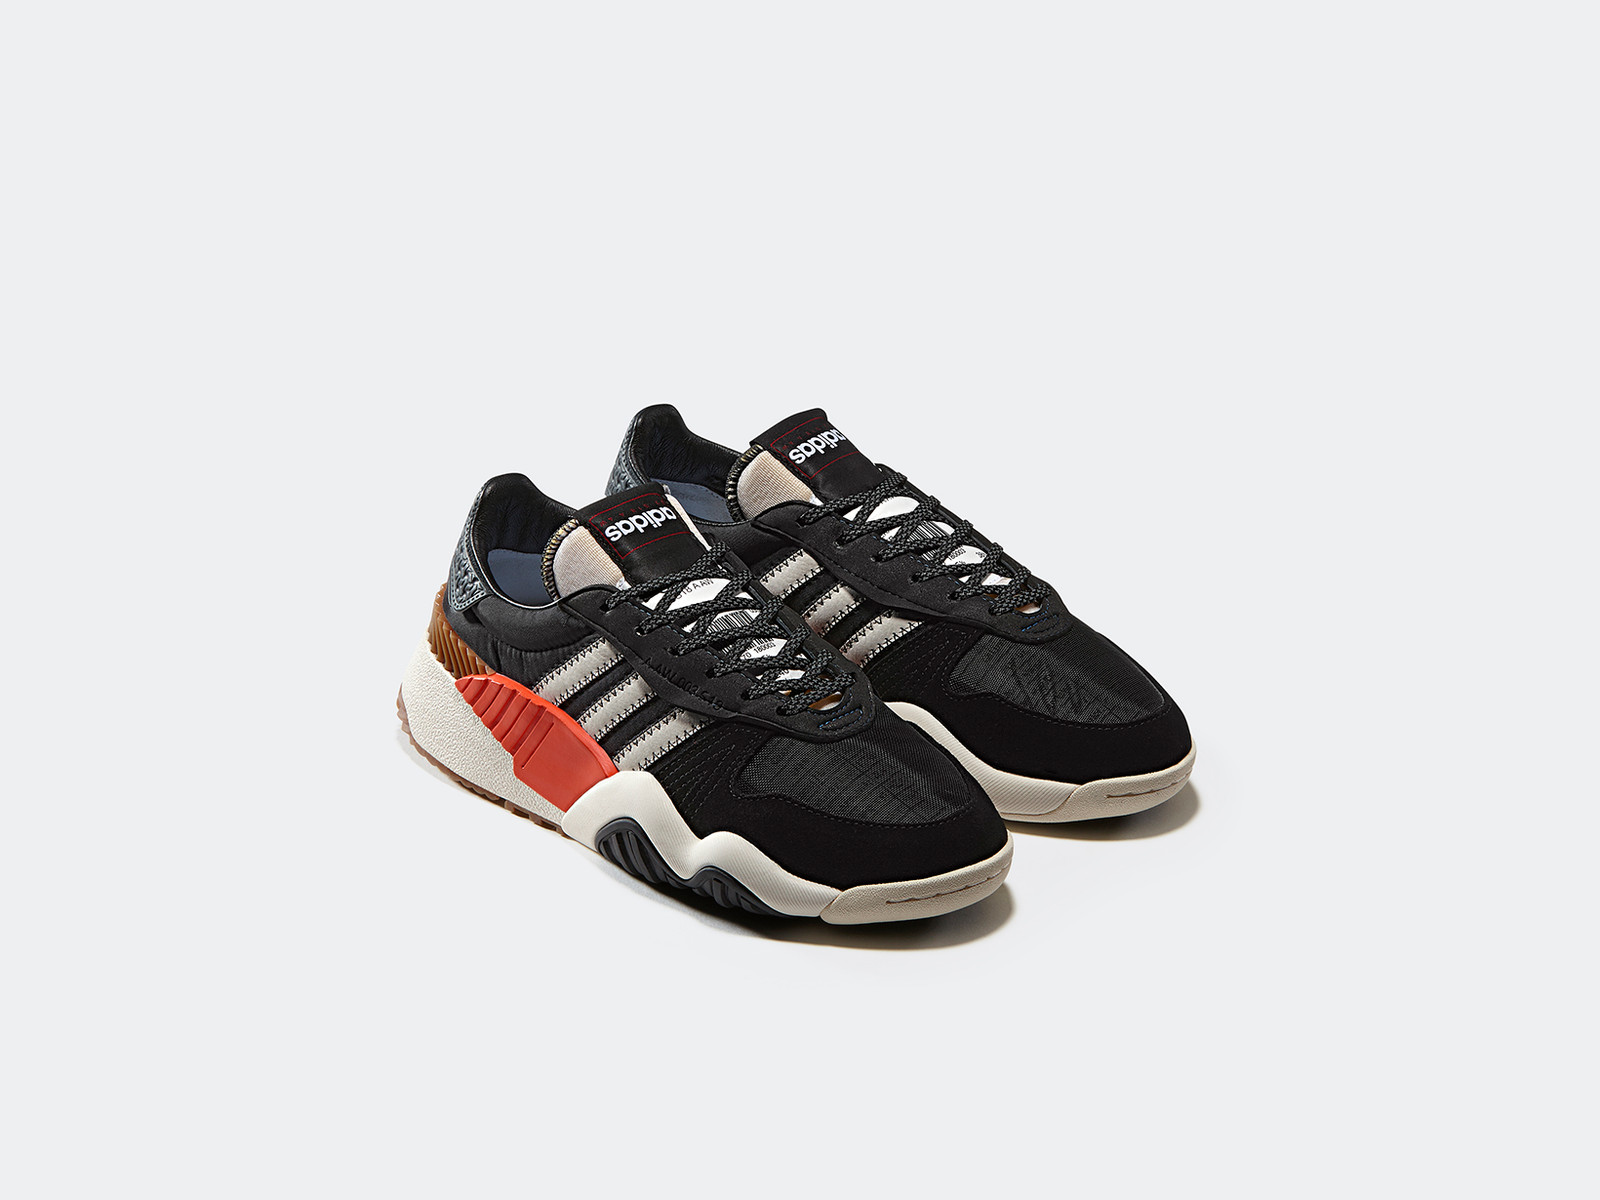 adidas Originals Alexander Wang Season 3 Drop 3 june 2018 release date info drop